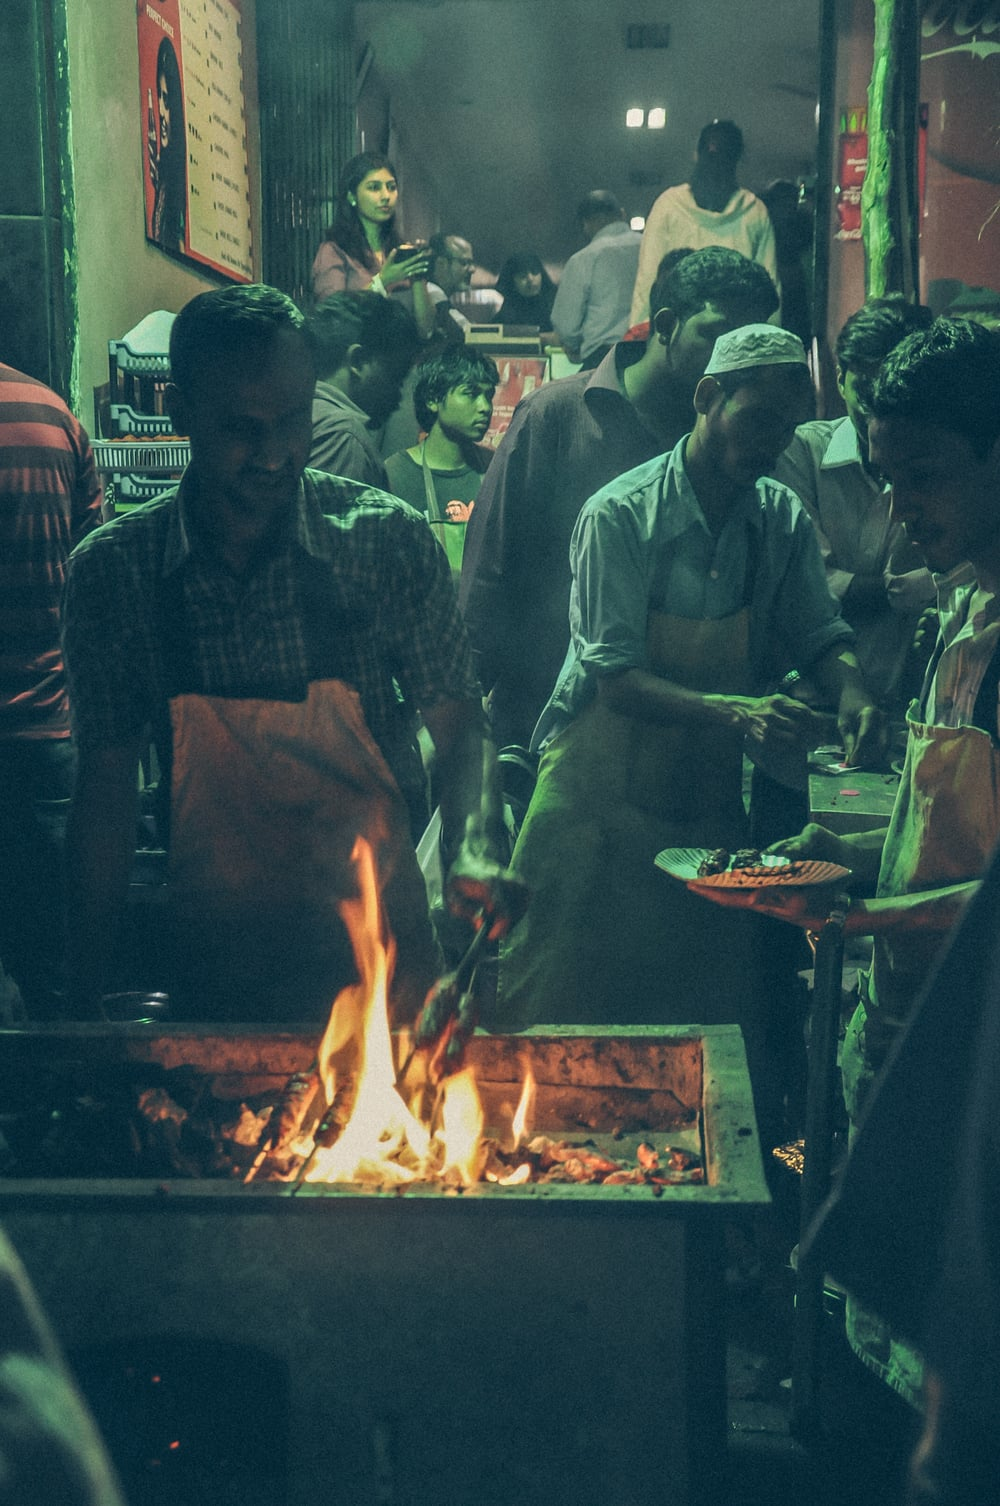 Street food will always have its way of using flavours, and affordability to dull any bias.